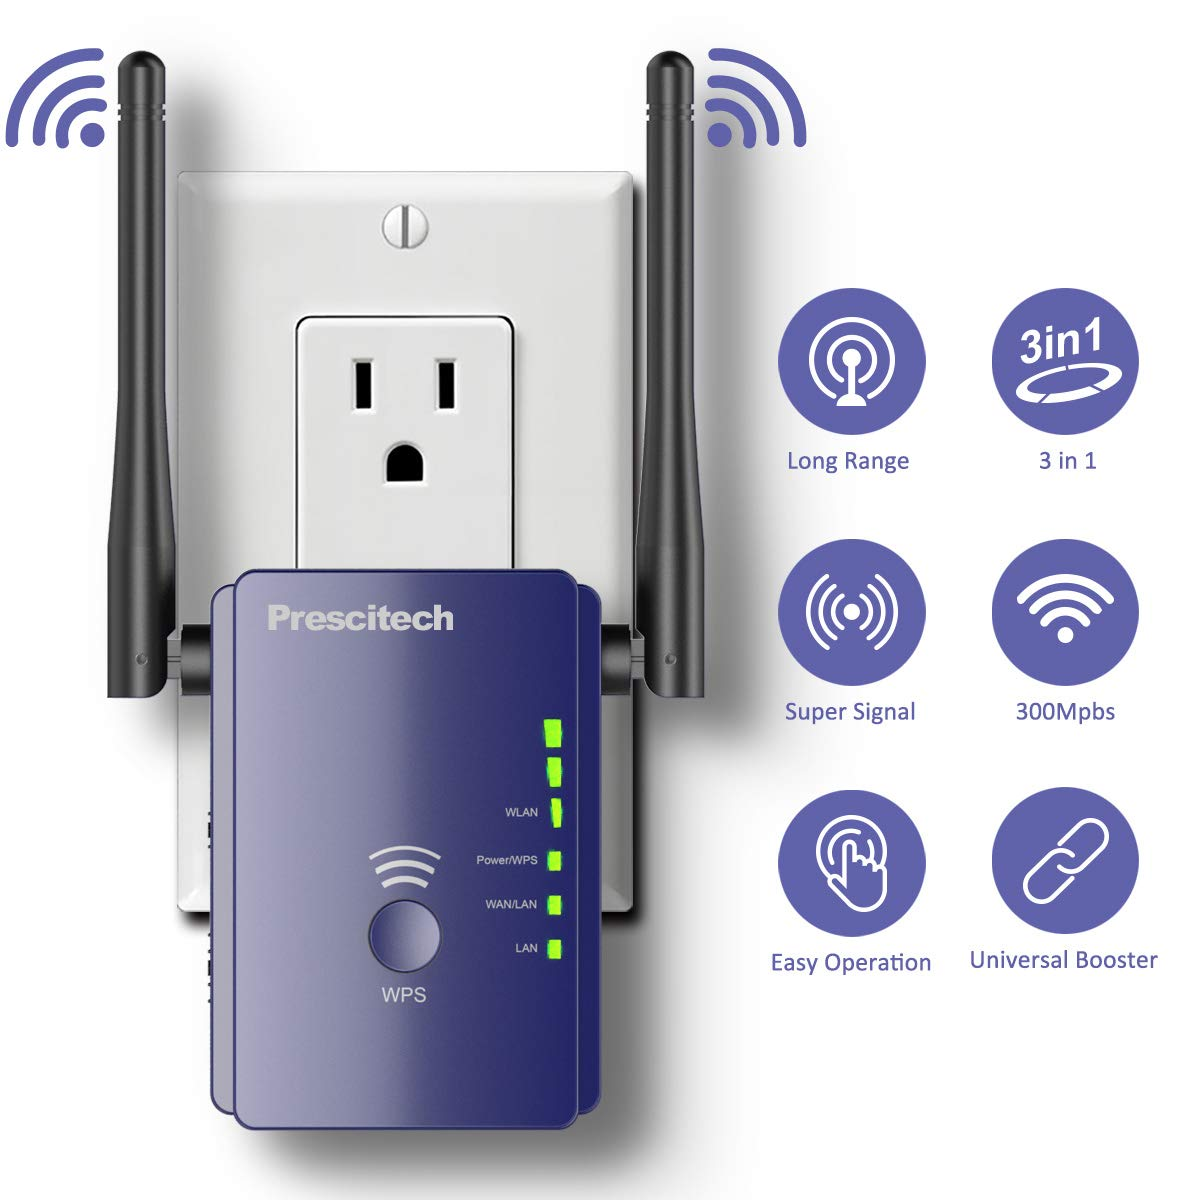 WiFi Range Extender -300Mpbs WiFi Repeater with WPS-2.4GHz Wireless Internet Signal Booster with High Gain Dual Antennas, Access Point/Repeater/Router Mode, 2 Ethernet Ports for Covering Smart Home